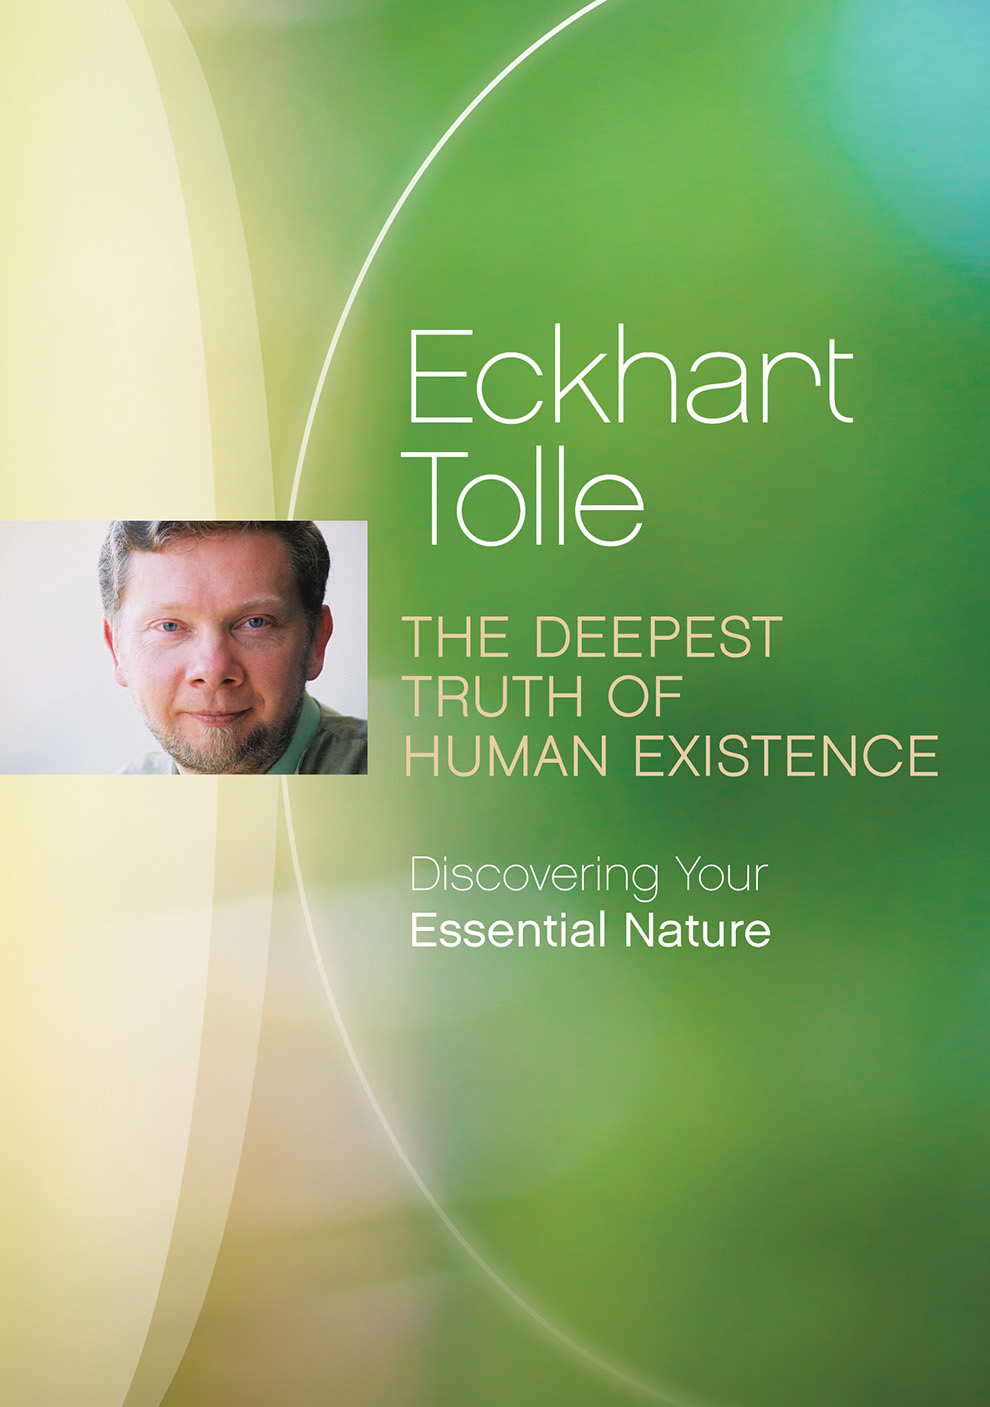 Eckhart Tolle: The Deepest Truth of Human Existence